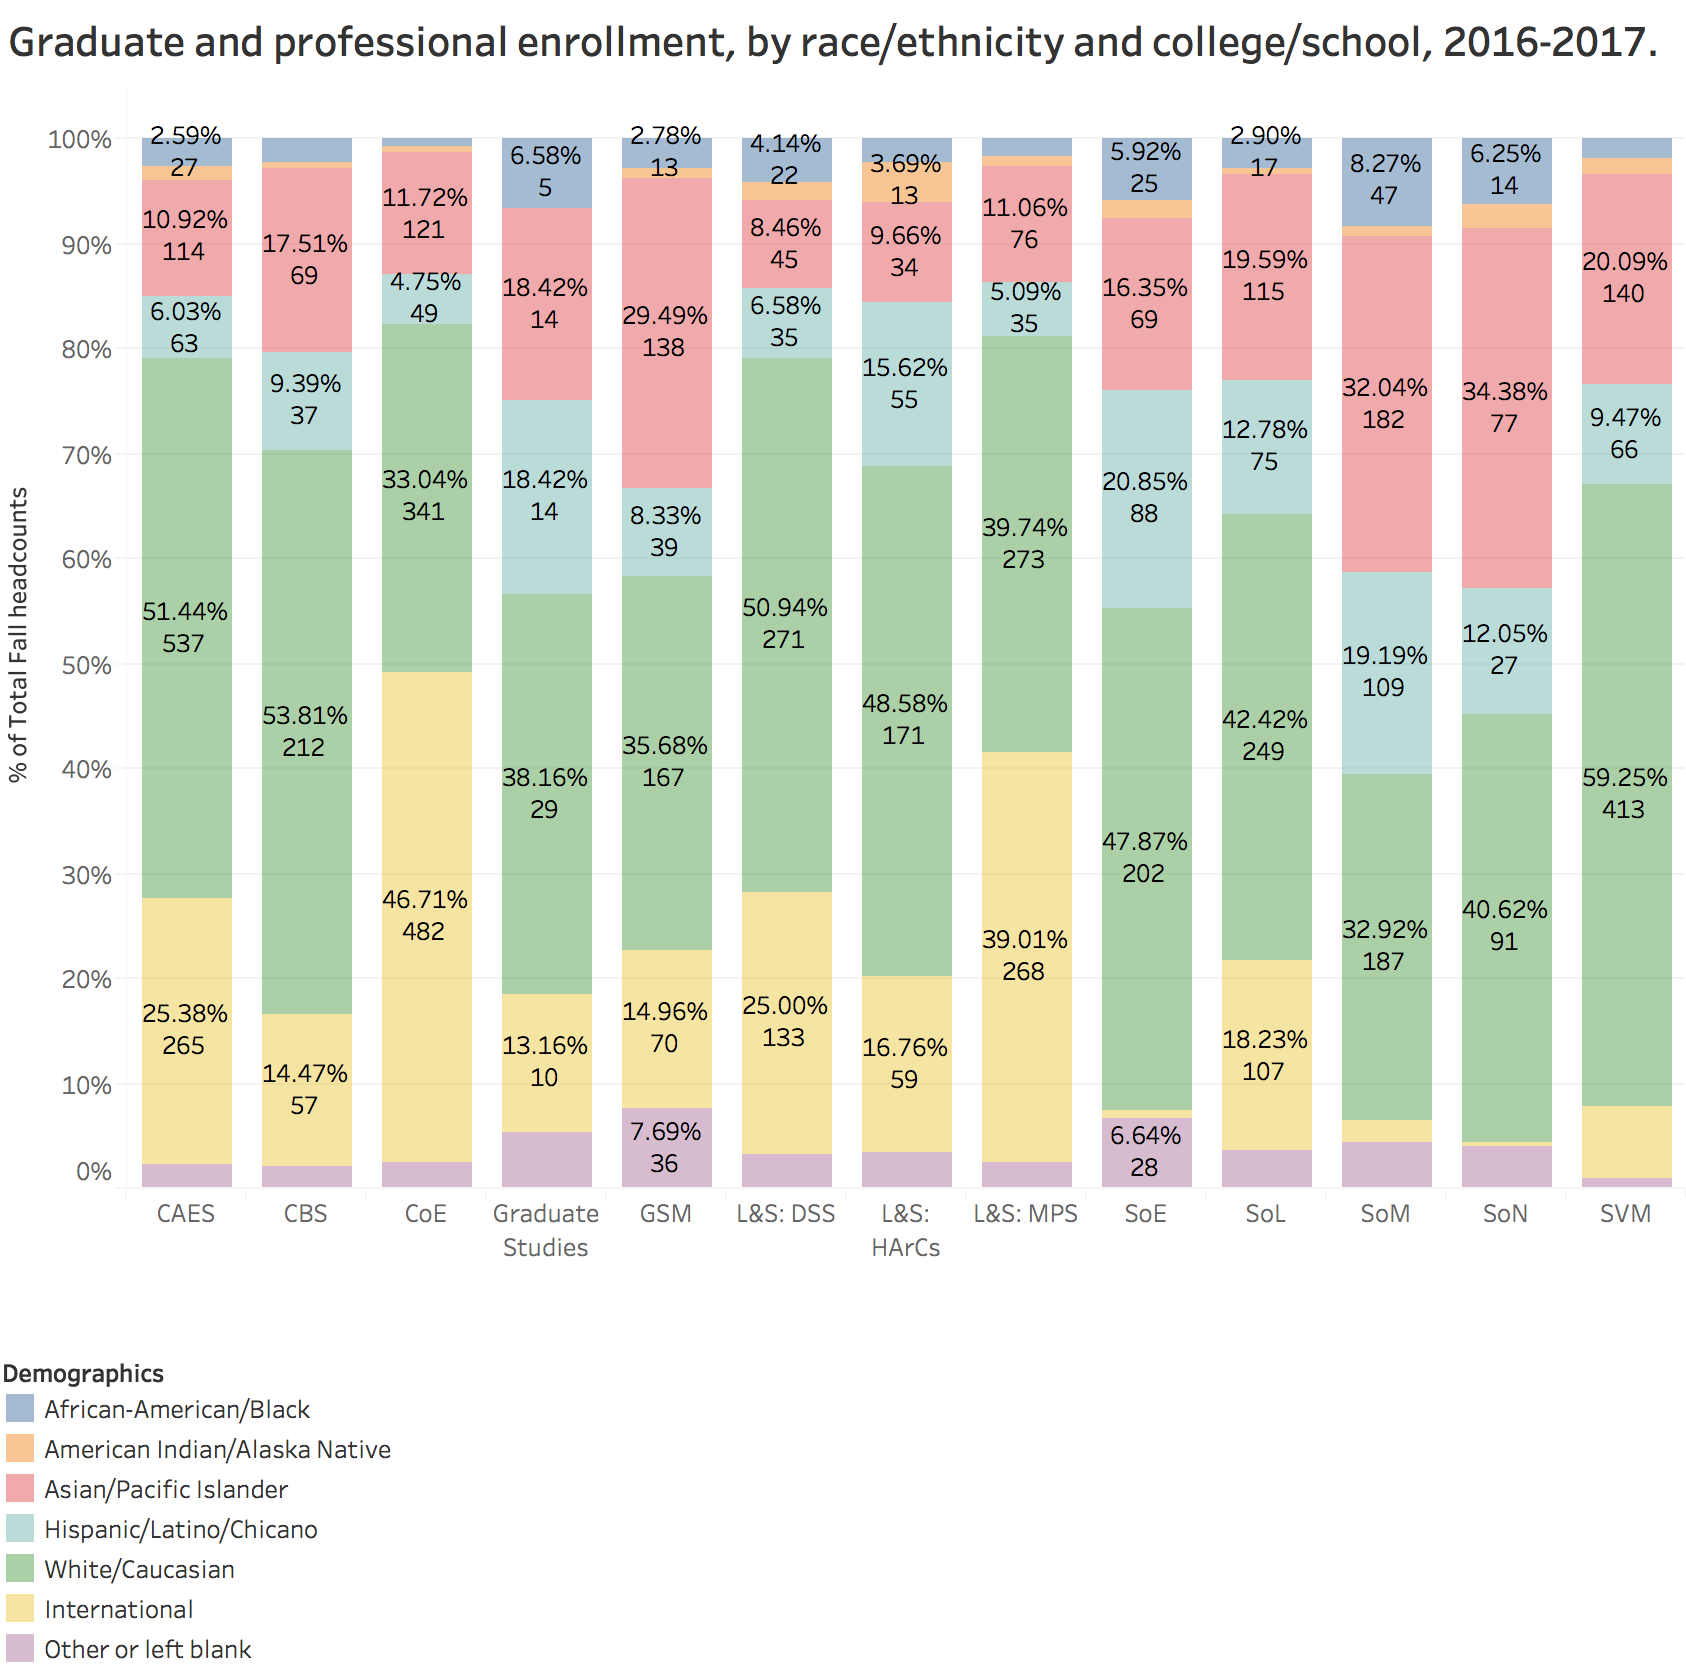 Graduate and professional enrollment, by race/ethnicity and college/school, 2016-2017